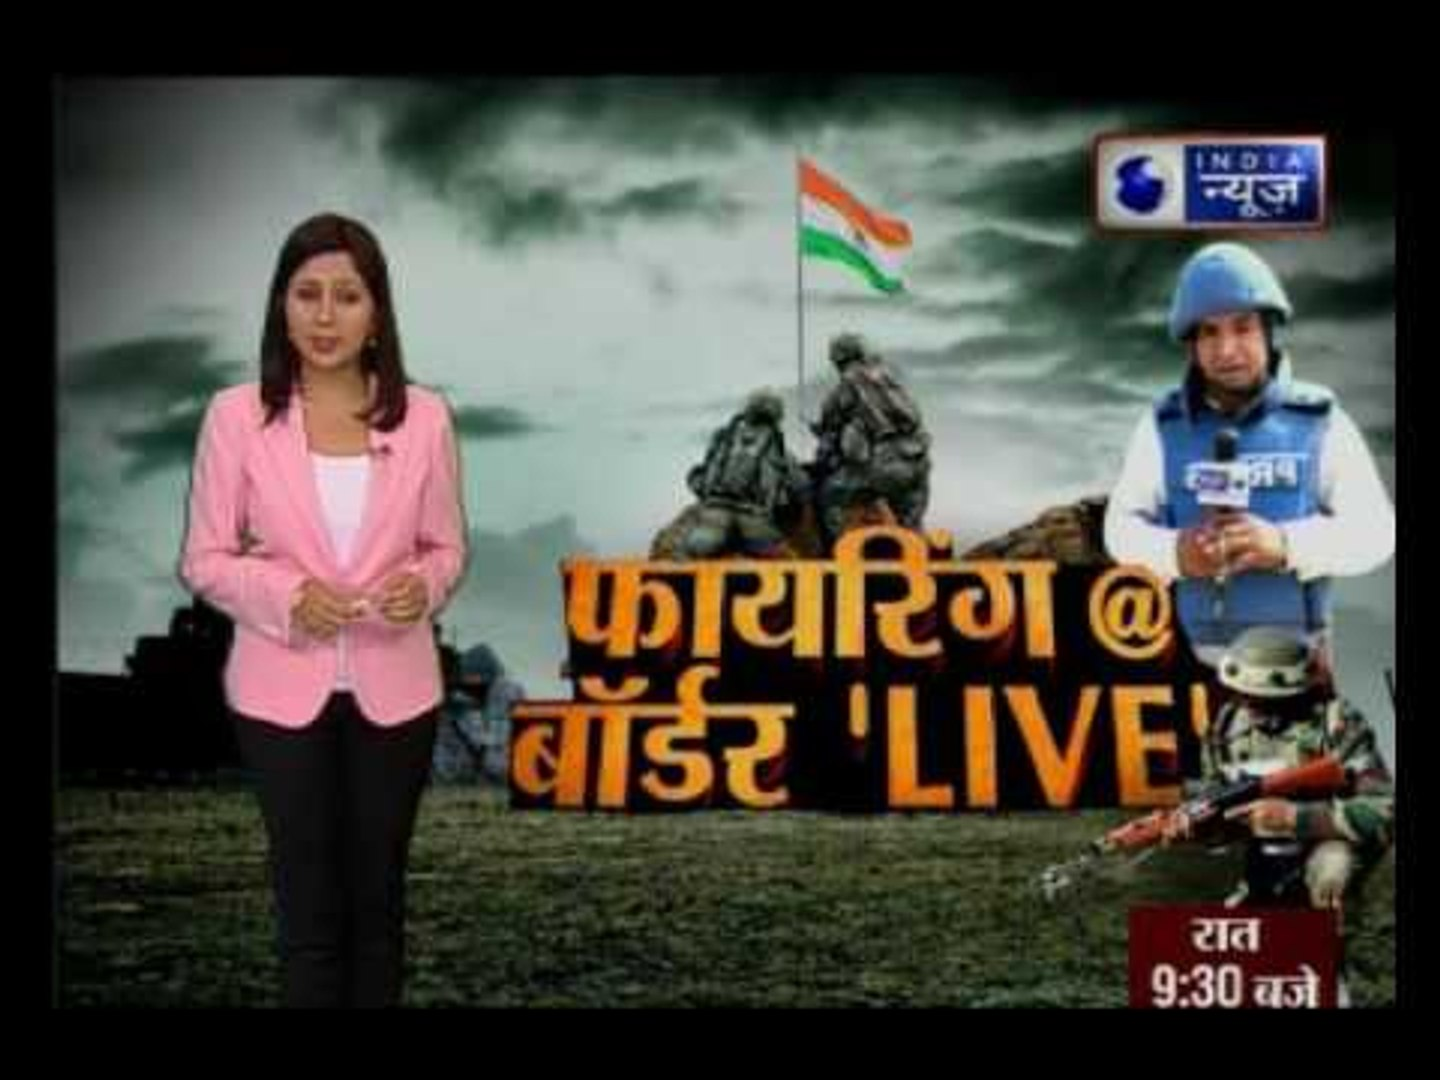 India News exclusive report from India-Pakistan international border